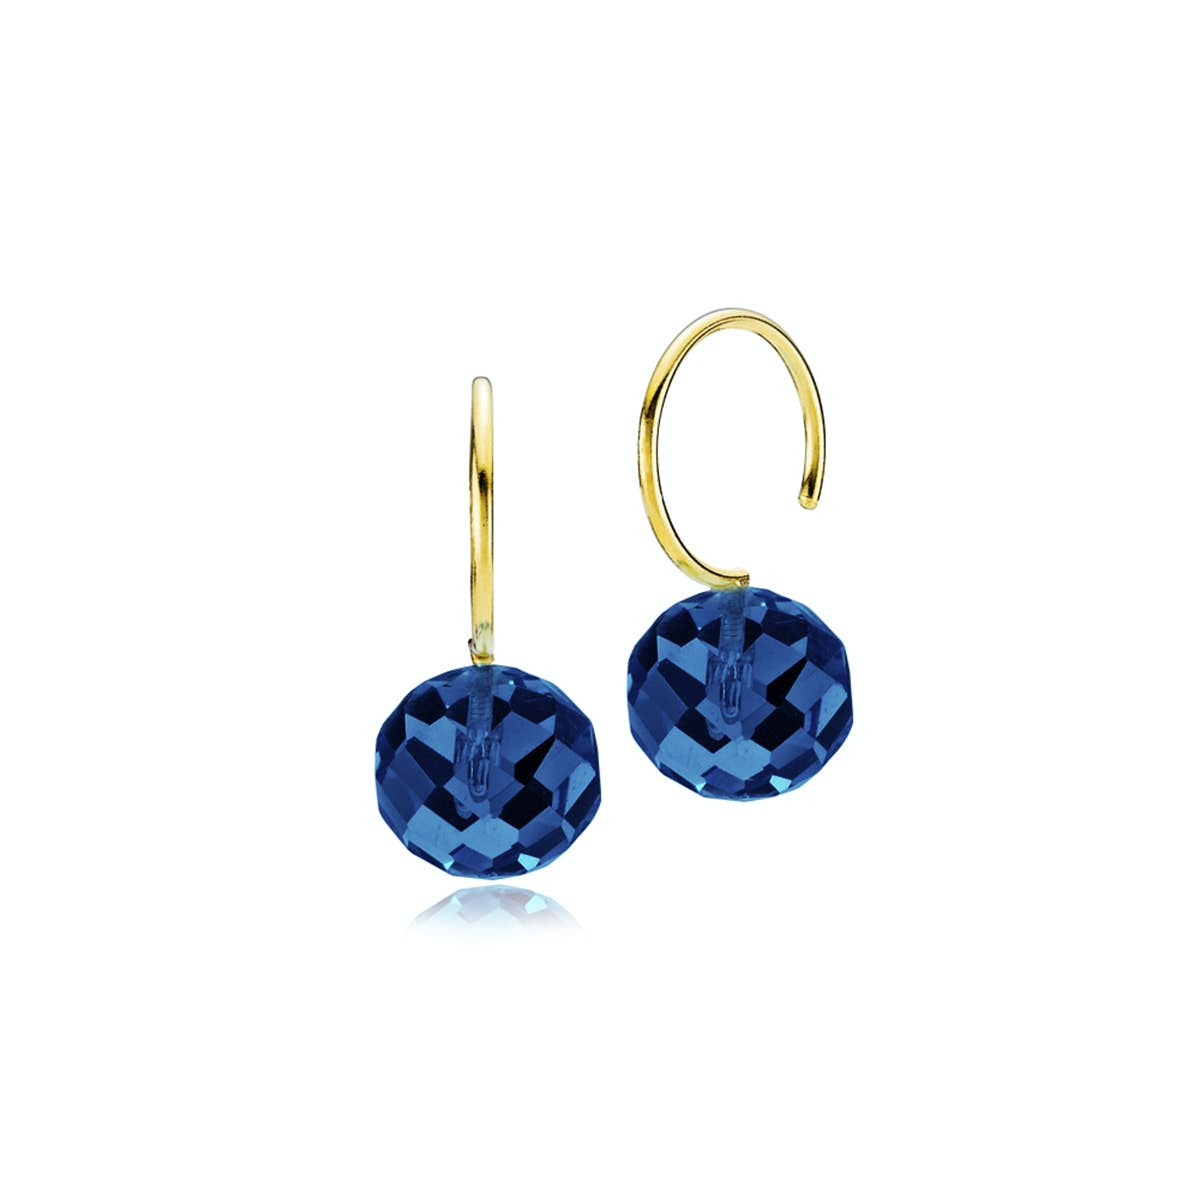 Marble Earrings Royal Blue Crystal Glass from Izabel Camille in Goldplated-Silver Sterling 925